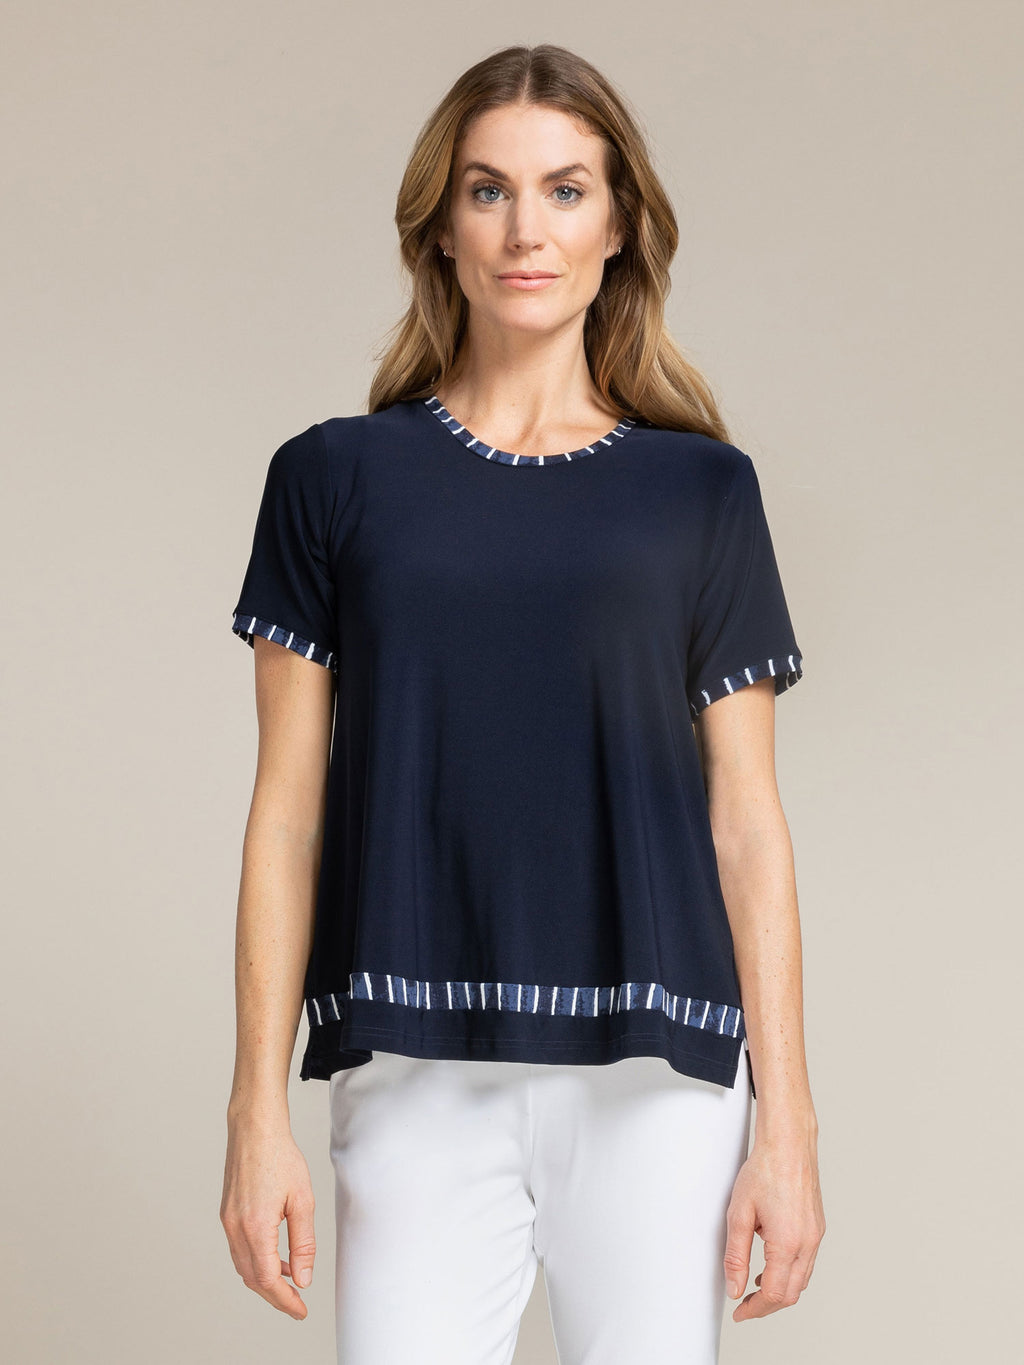 Sympli Outline Boxy Tee at Jophiel